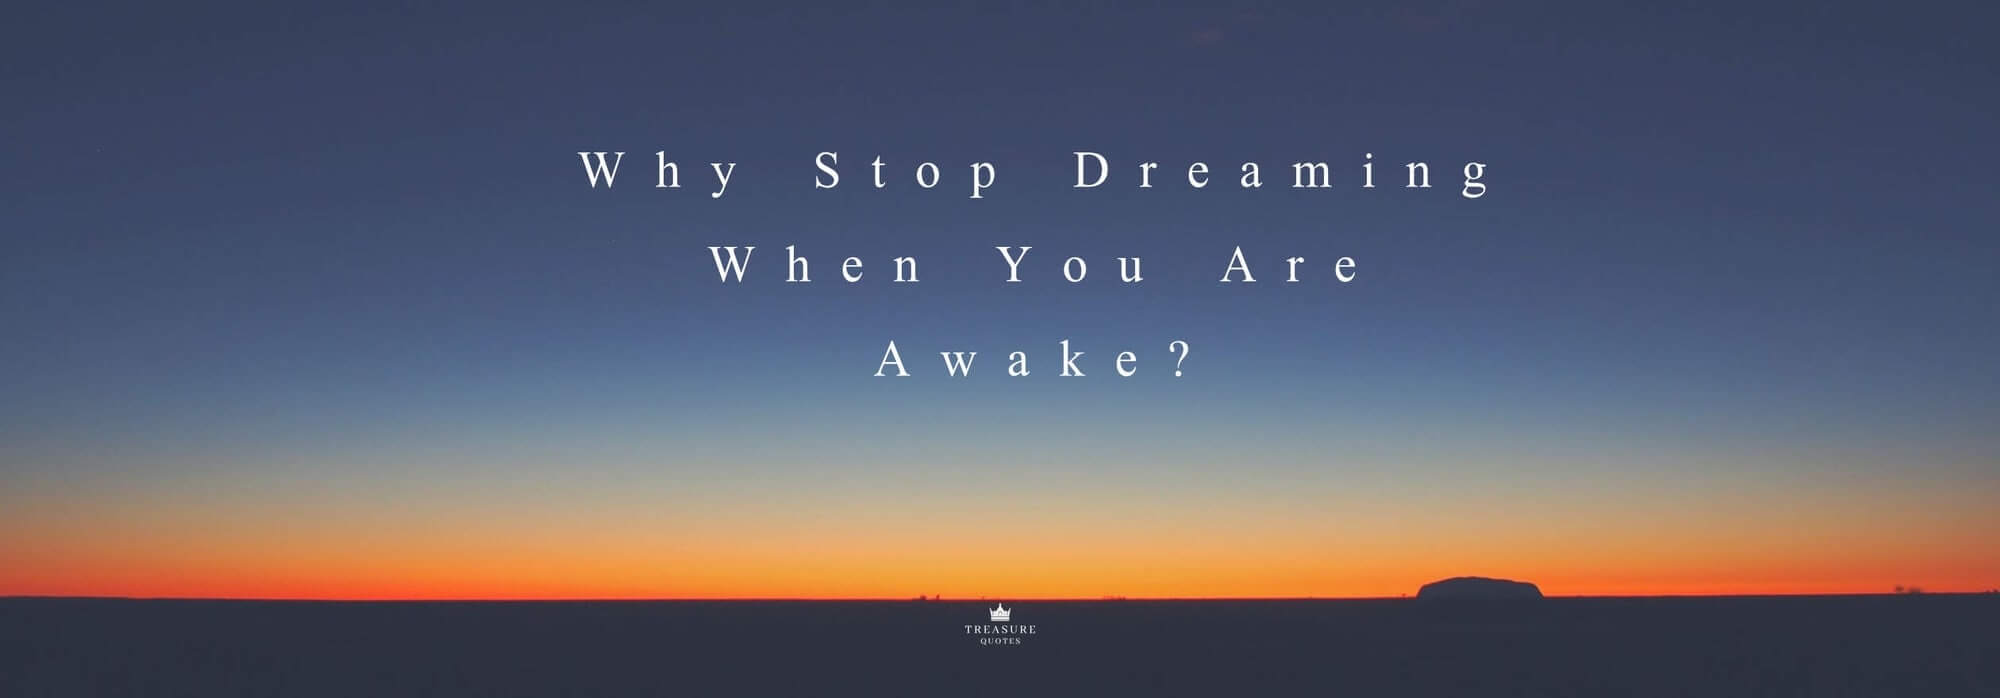 Why stop dreaming when you are awake?